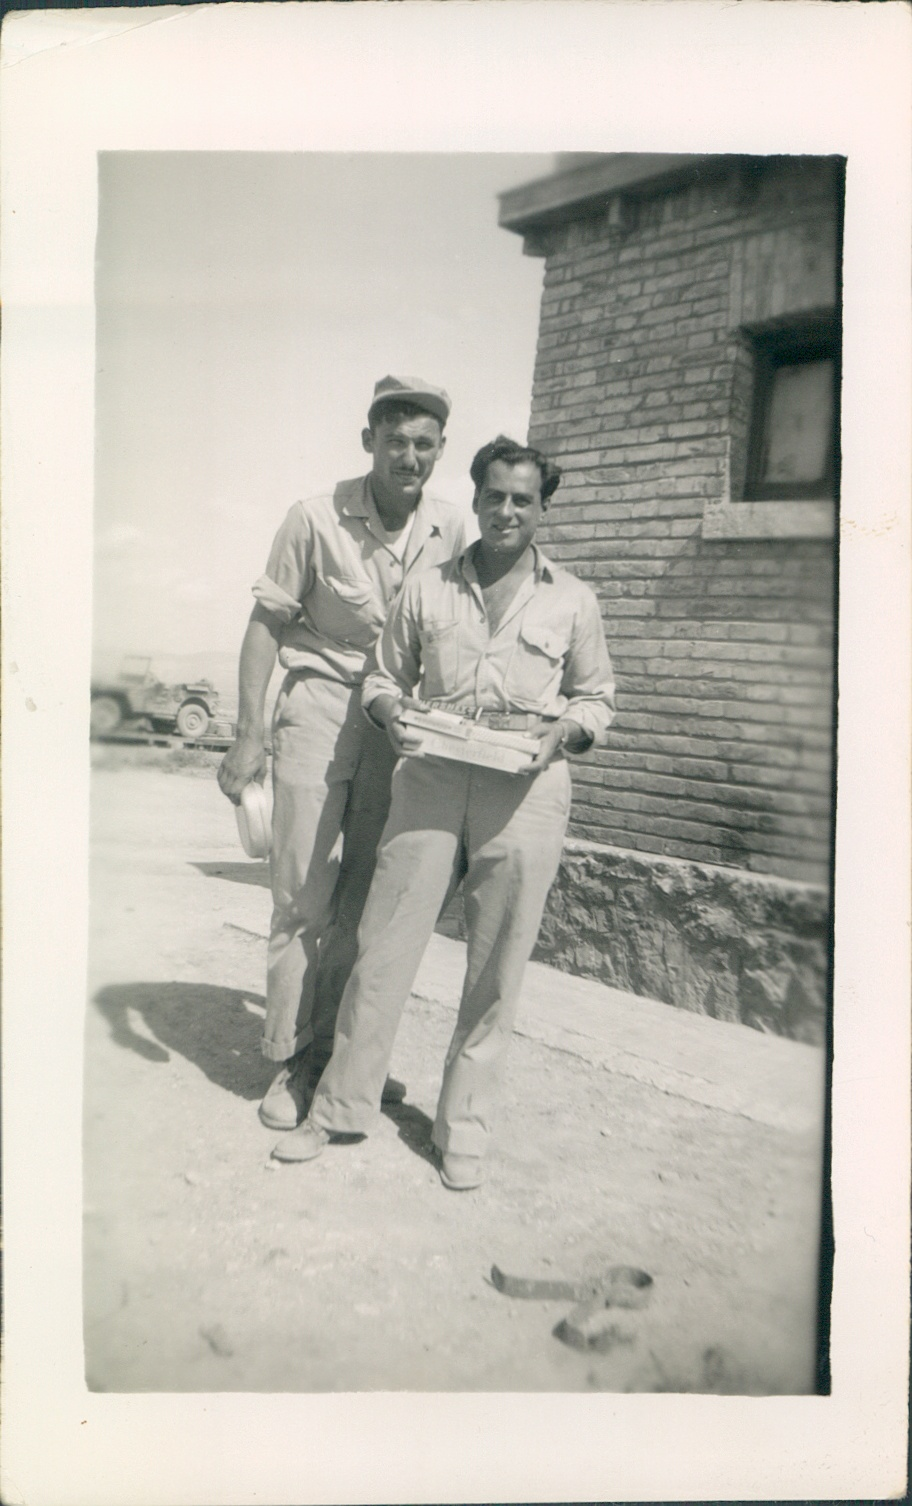 """September 1944 Italy  Ration Day - cigarettes, candy, soap, etc, and tickets for 5 bottles of beer, and two cokes all for $1.60. The Guy behind me is the tallest in the sqdn. about 6'5"""". - E. Carbone"""